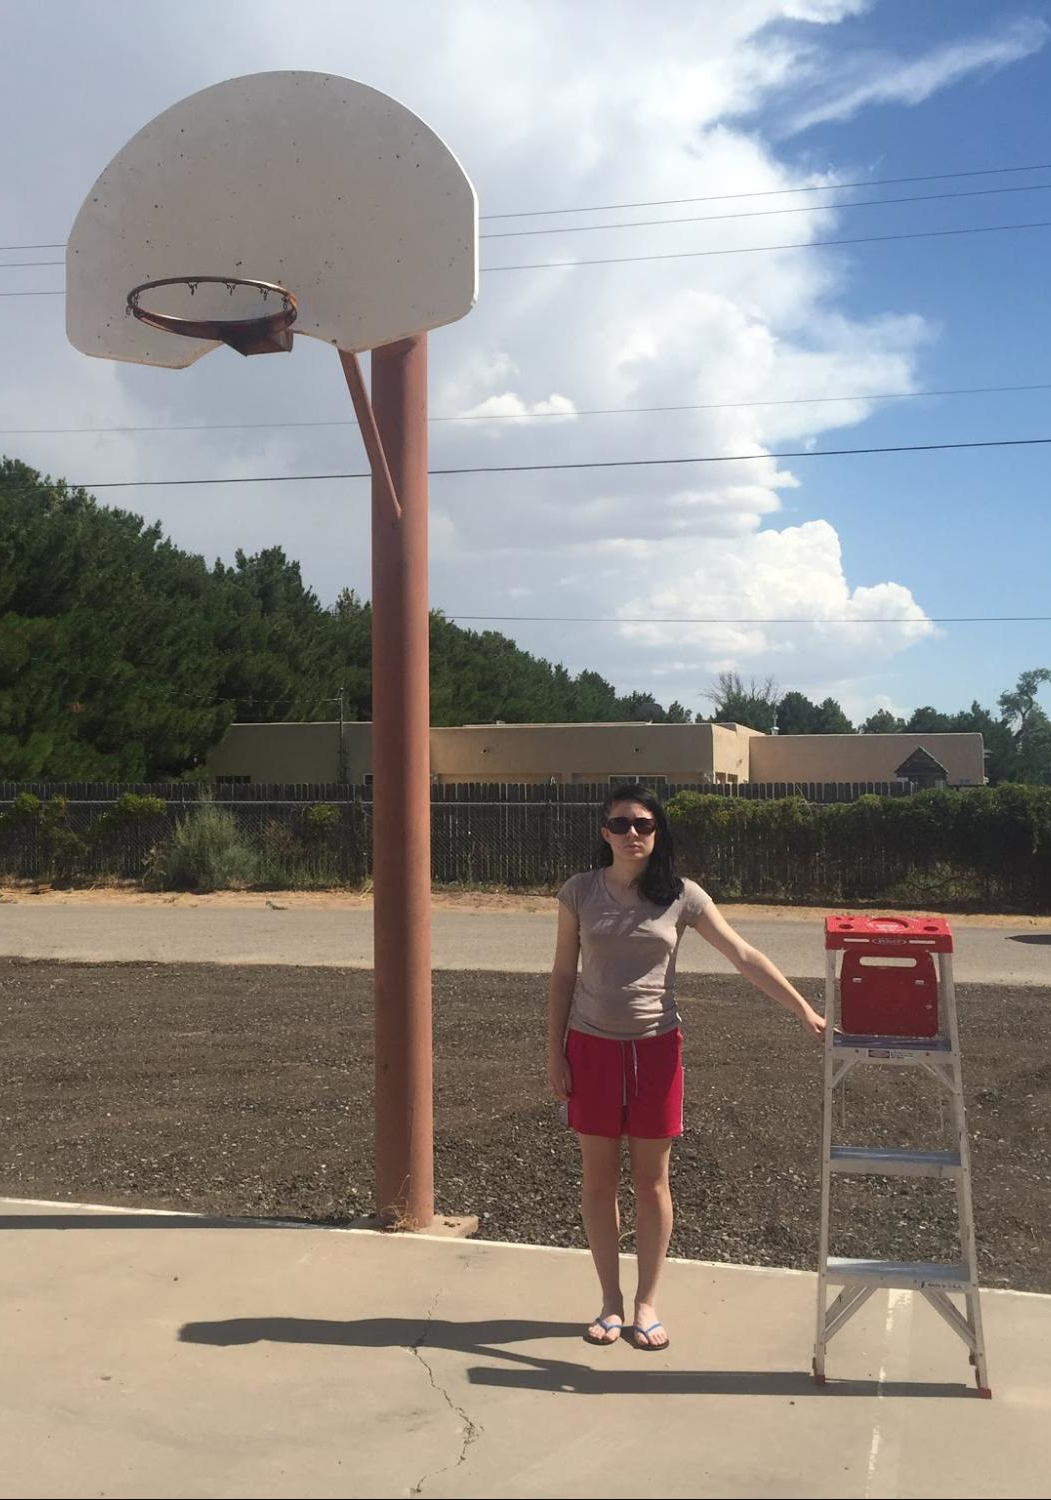 An image of a full size basketball hoop attached to a pole. To the right of the pole stands a young woman. The height of the woman stops about midway up the pole. To the right of the woman stands a 4-rung step ladder. The height of the step ladder stops at the woman's shoulder.